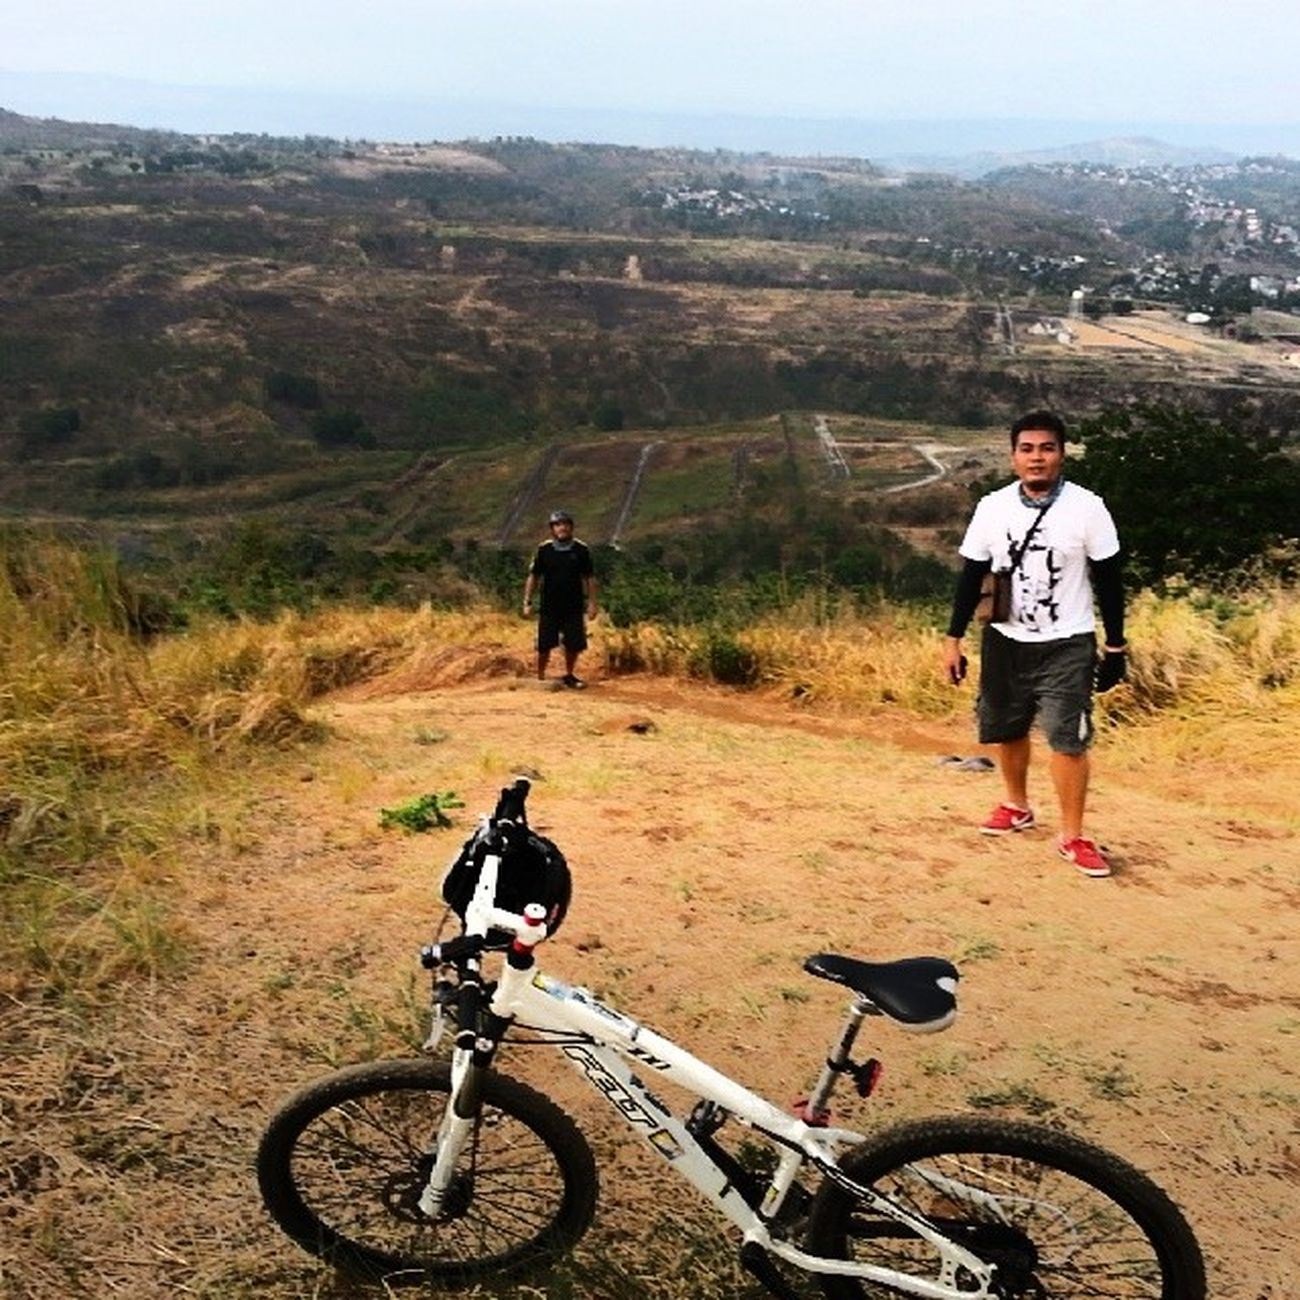 Labor Day is Bike Day with my bros. Biketrip Mountain View Mountain Biking Bikereward Bikelife Feltbike Felt Celebrate Your Ride